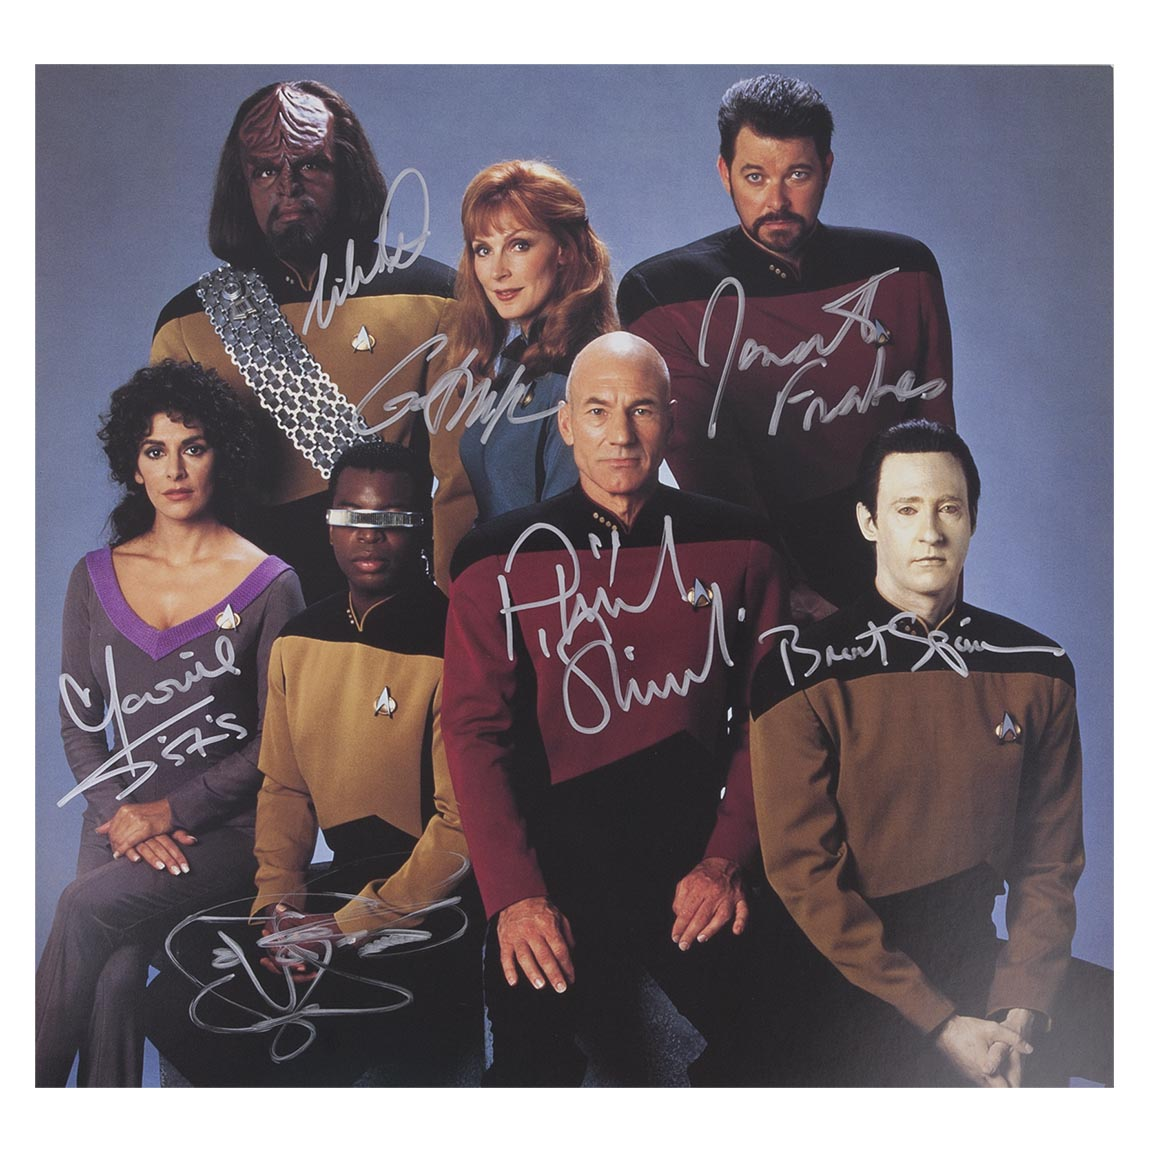 Star Trek The Next Generation Autographed Crew Photo [12x12]